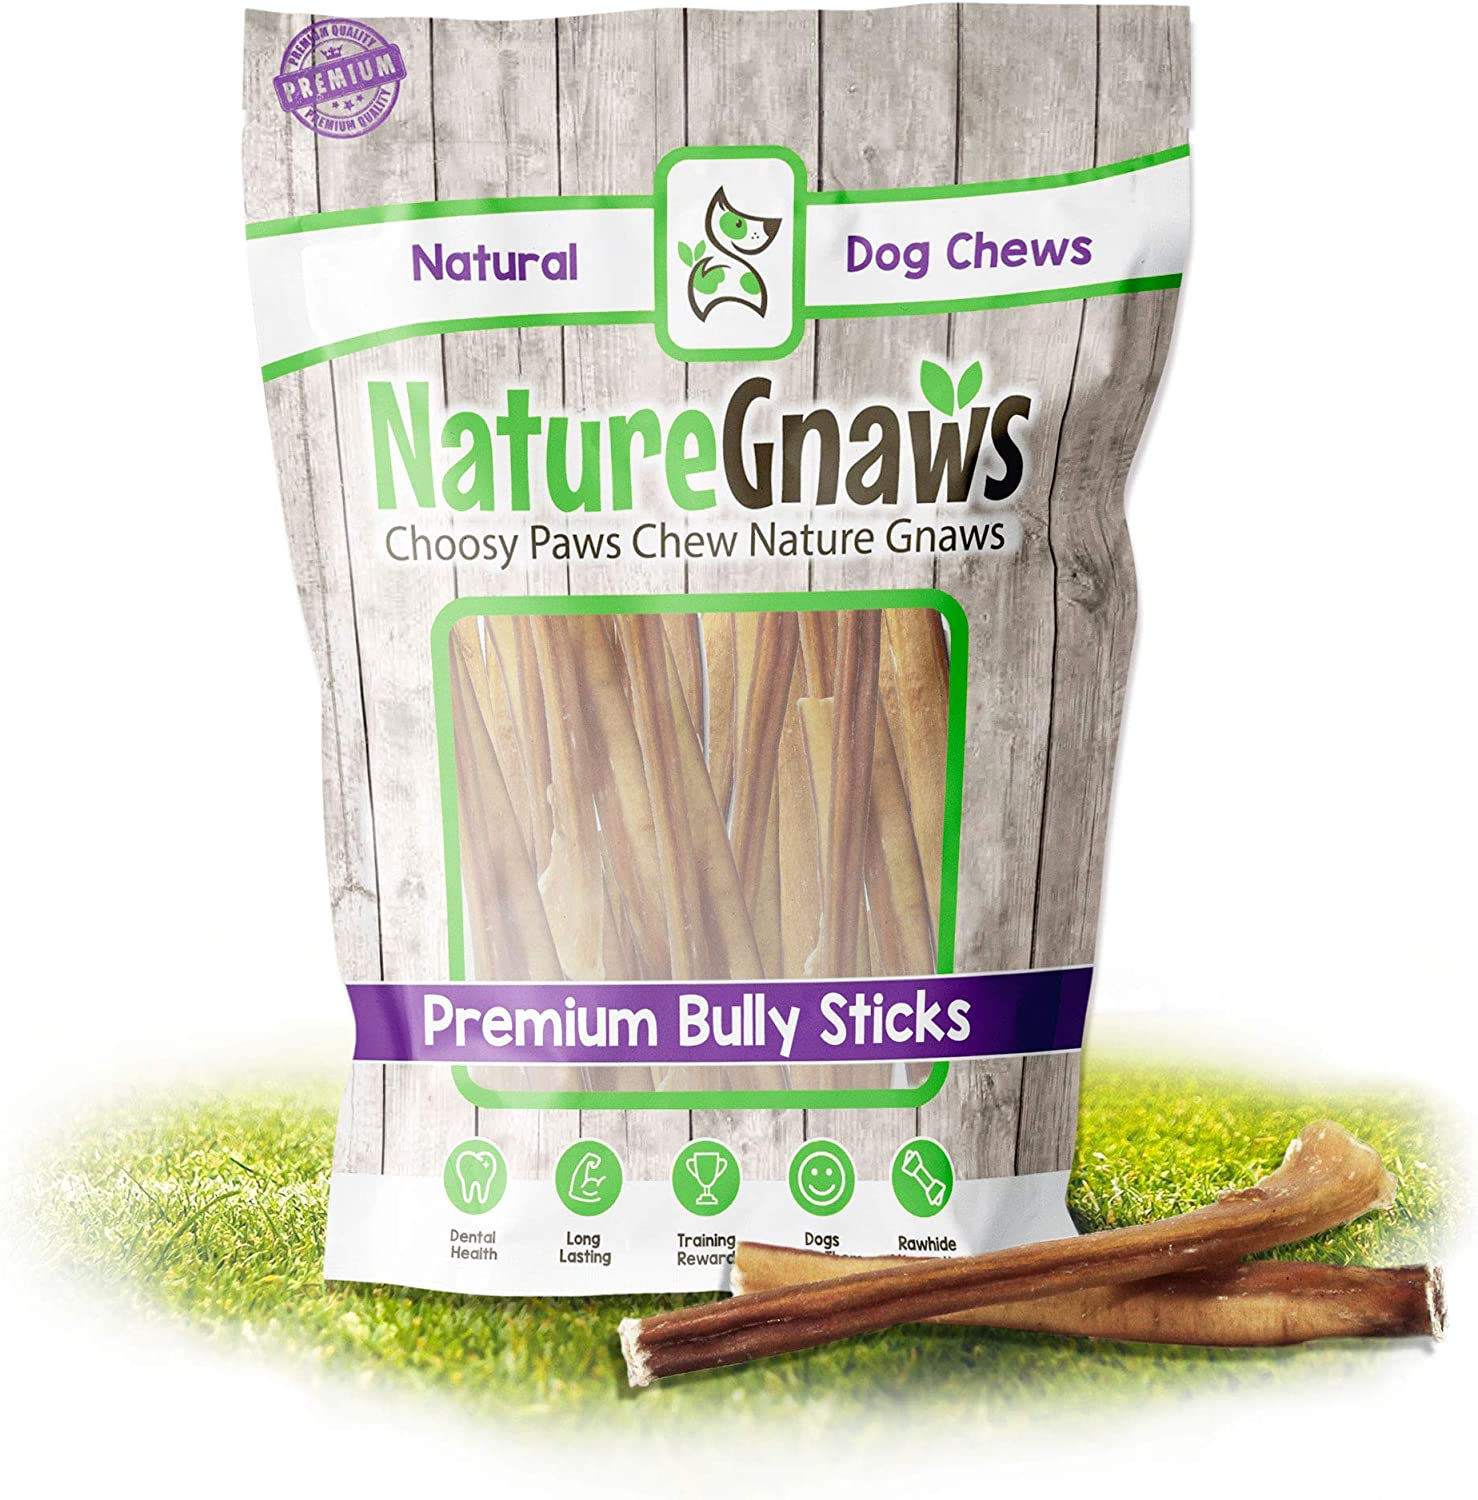 Nature Gnaws Small Bully Sticks - Premium Natural Free-Range Beef Dog Chews - Single Ingredient & Long Lasting Chew Treats for Small Dogs - Rawhide Alternative Bones